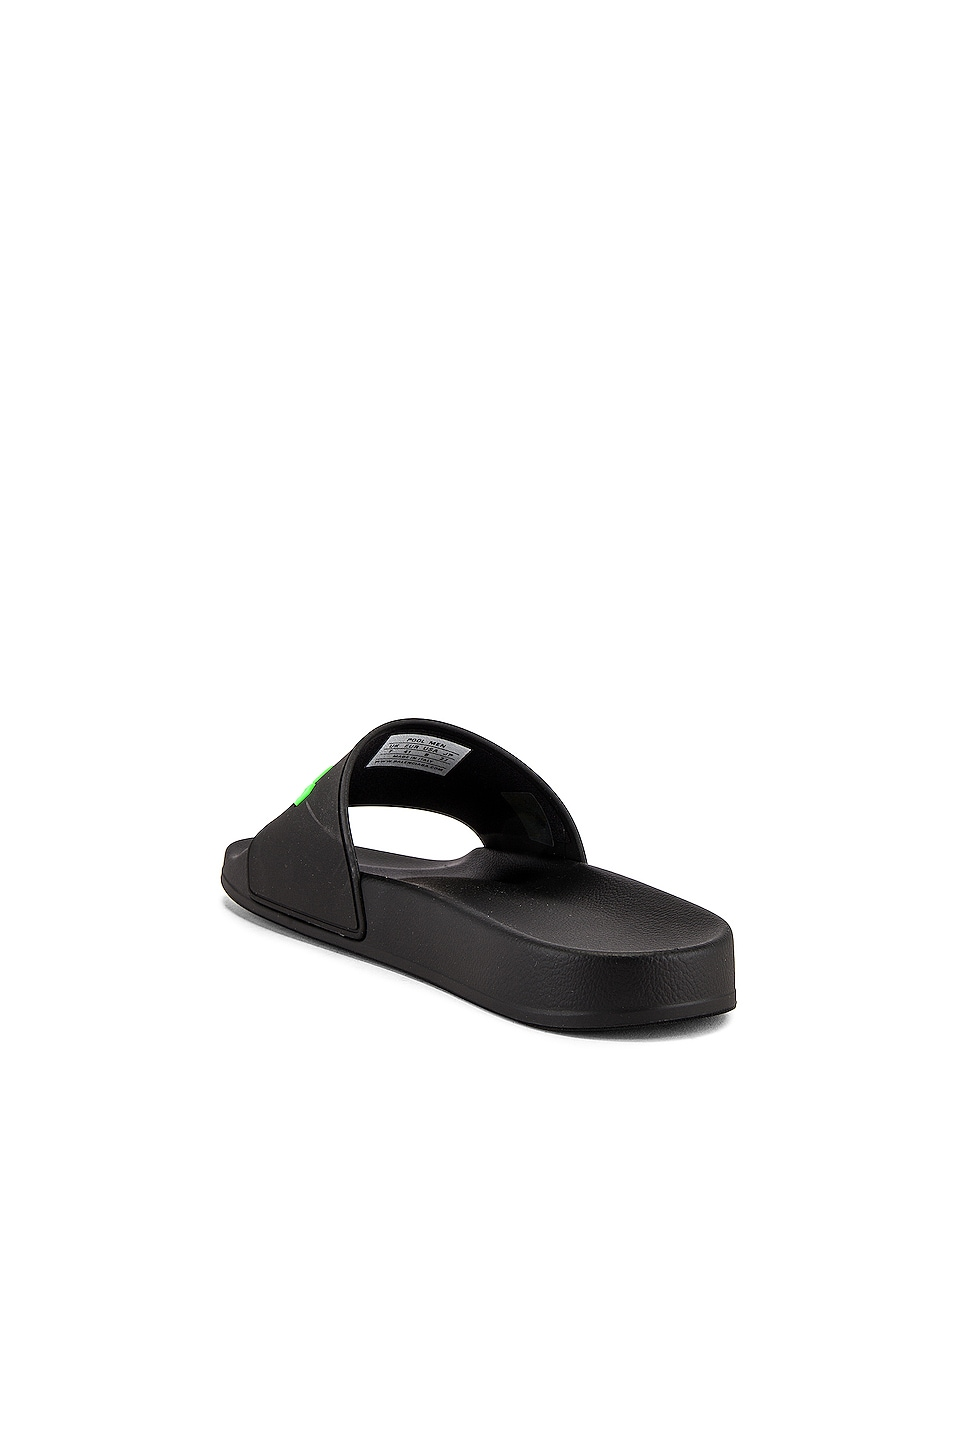 Image 3 of Balenciaga Rubber Logo Pool Slide in Black & Fluo Green